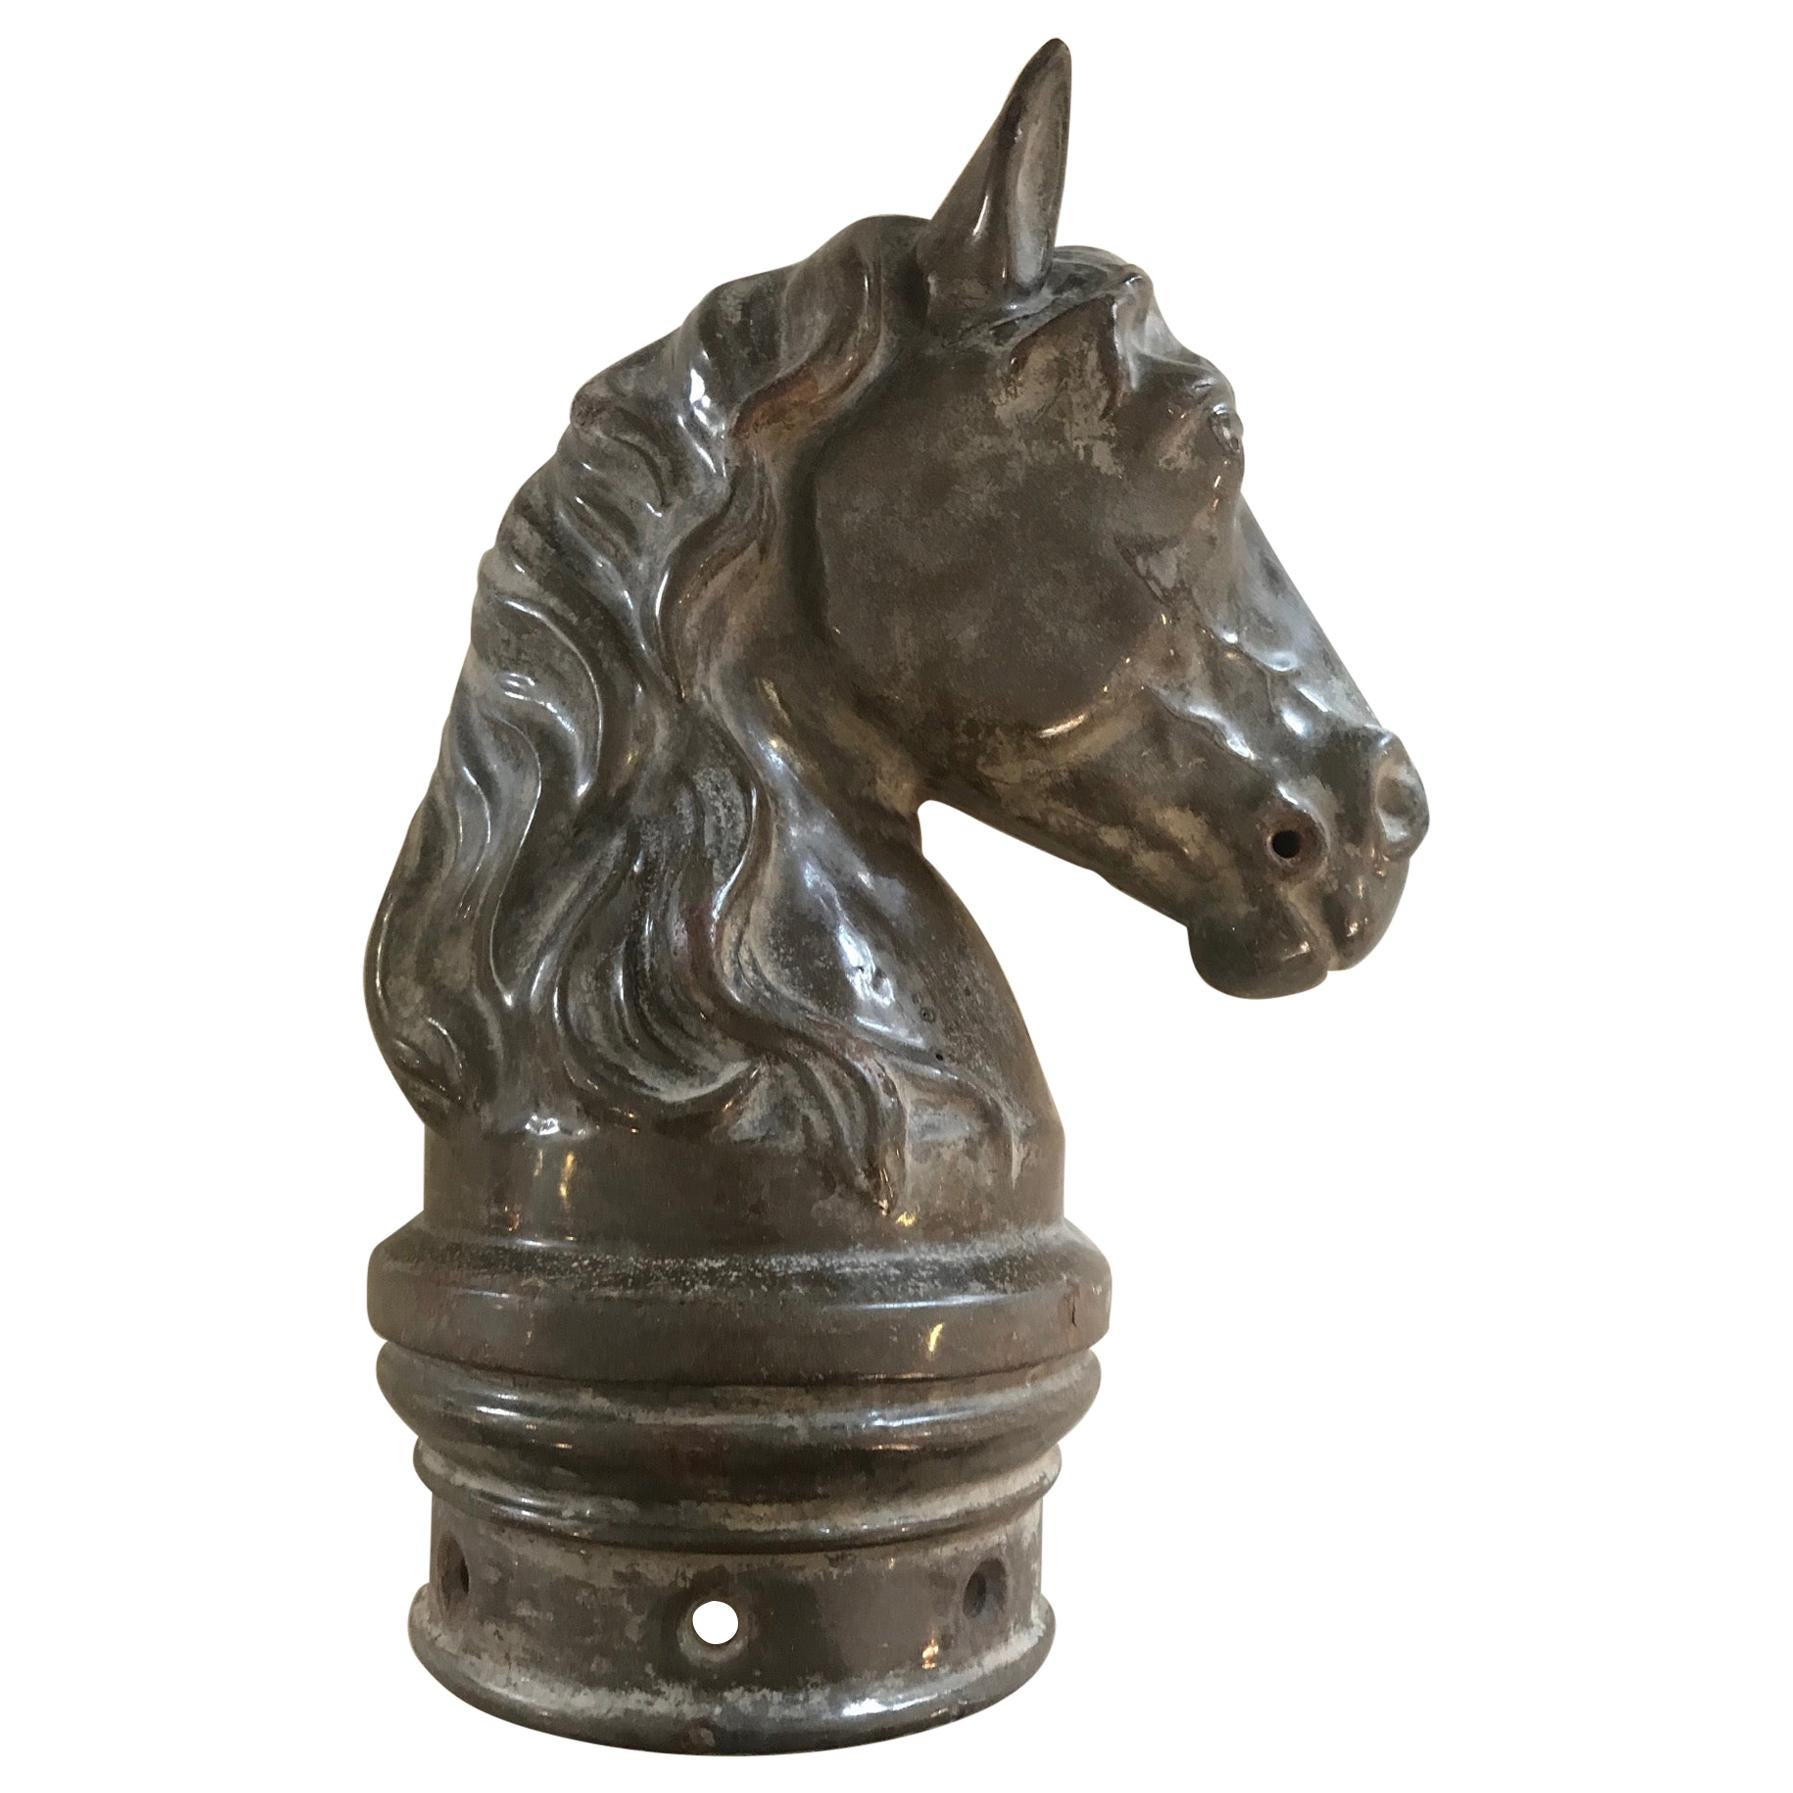 20th Century French Iron Head's Horse Ornament